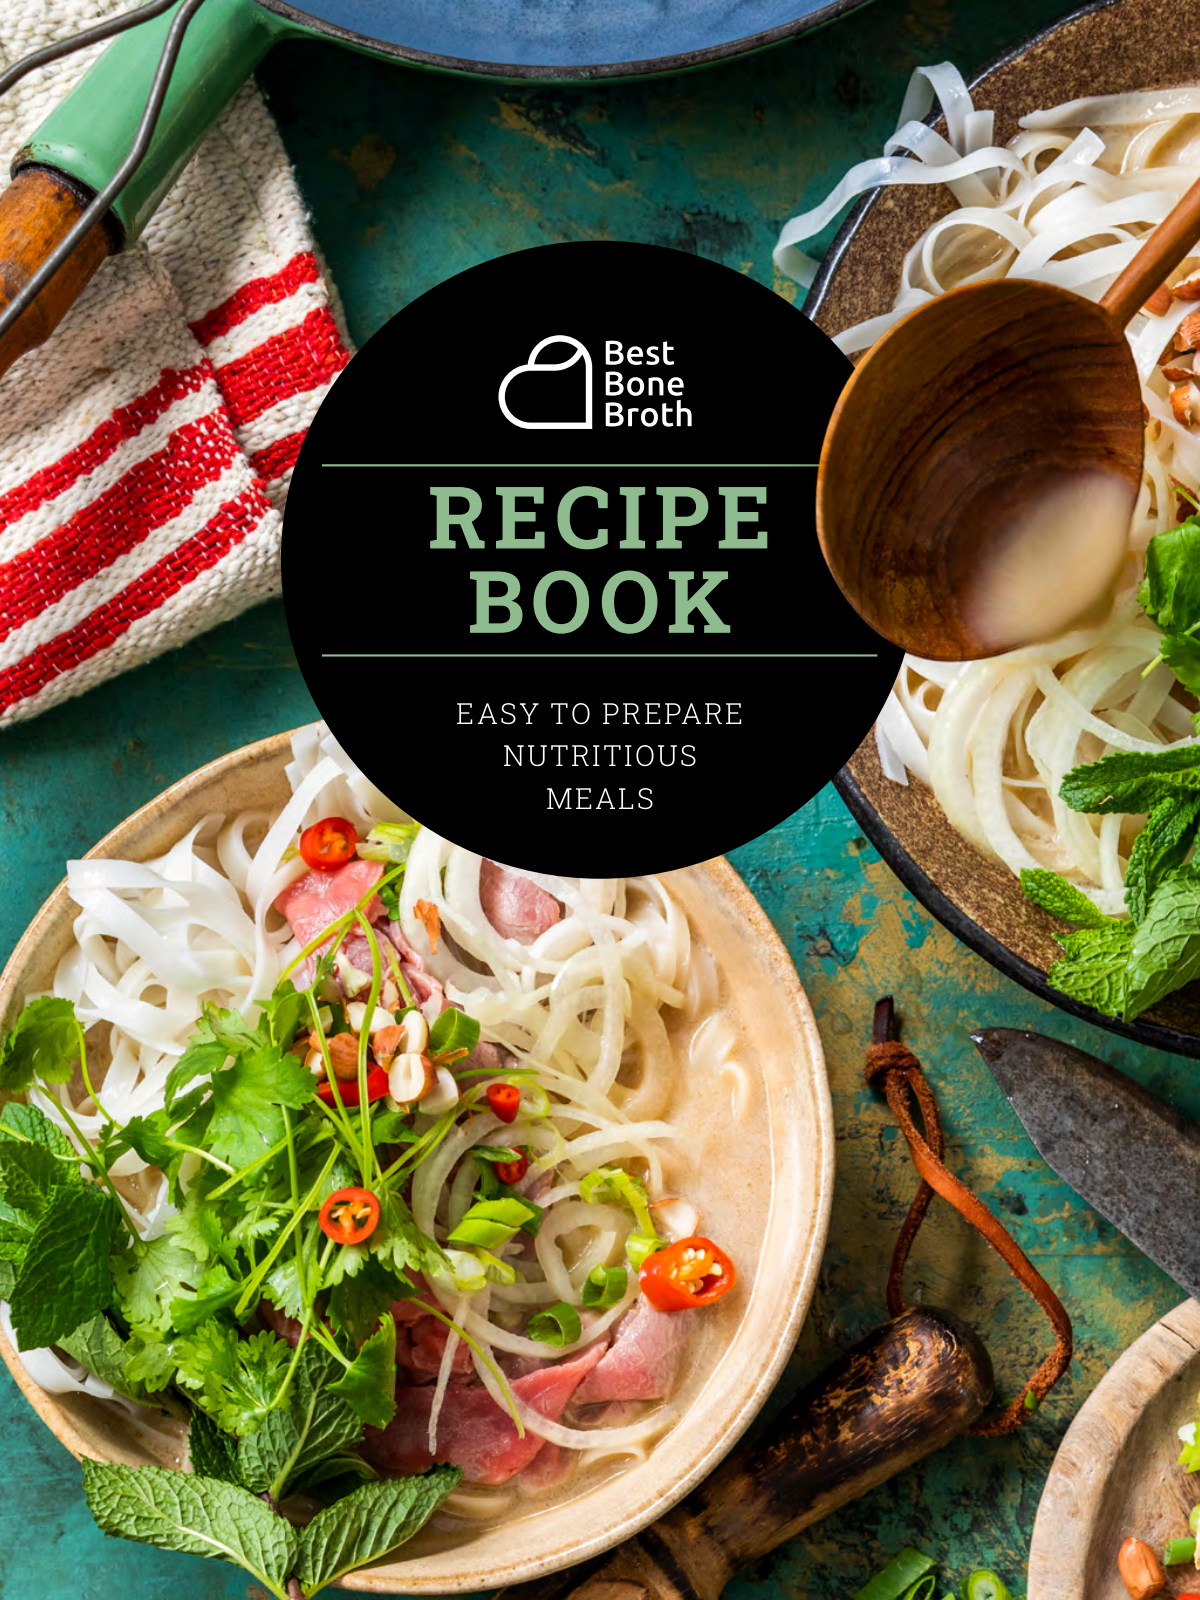 Bone broth recipe book - merged